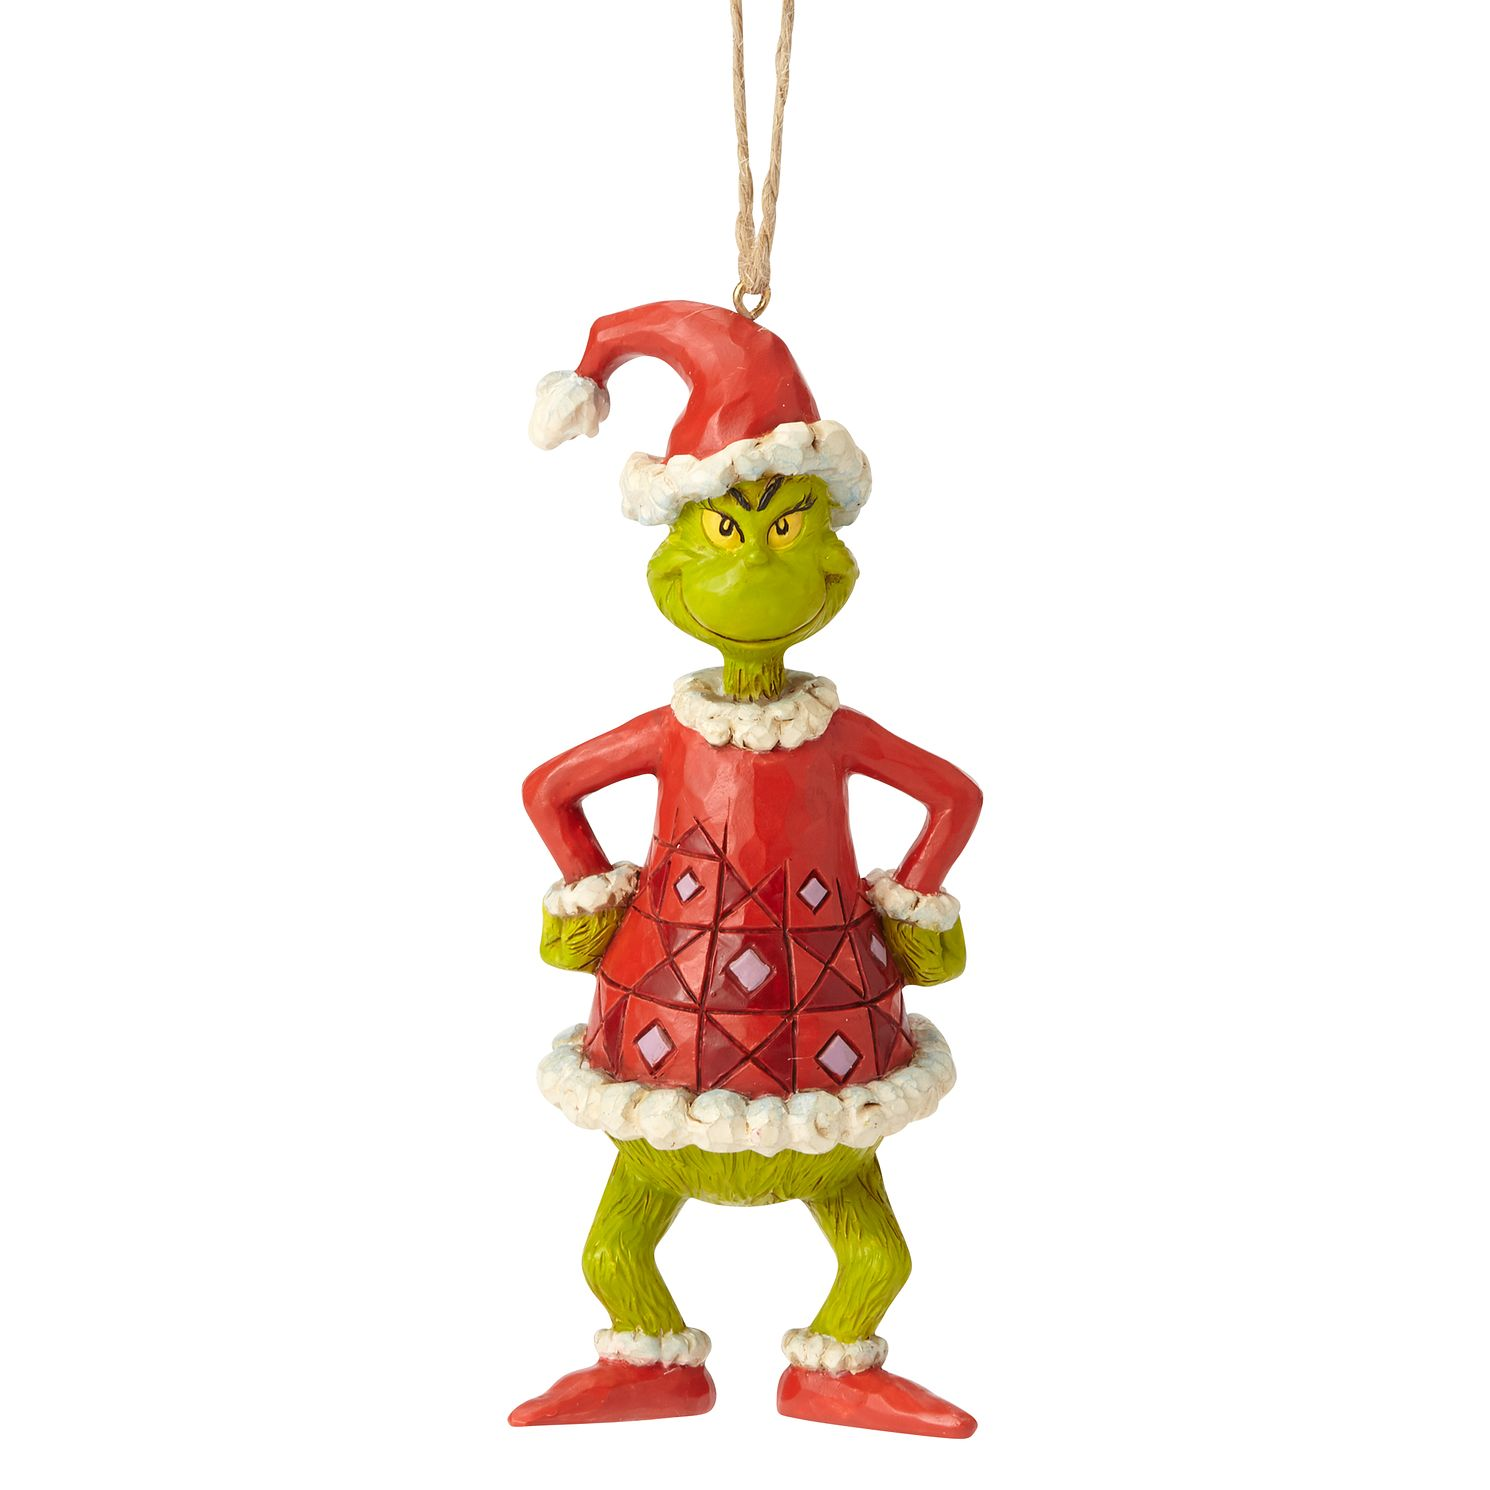 Dr Seuss Grinch Santa Hanging Ornament - Product number 1195220